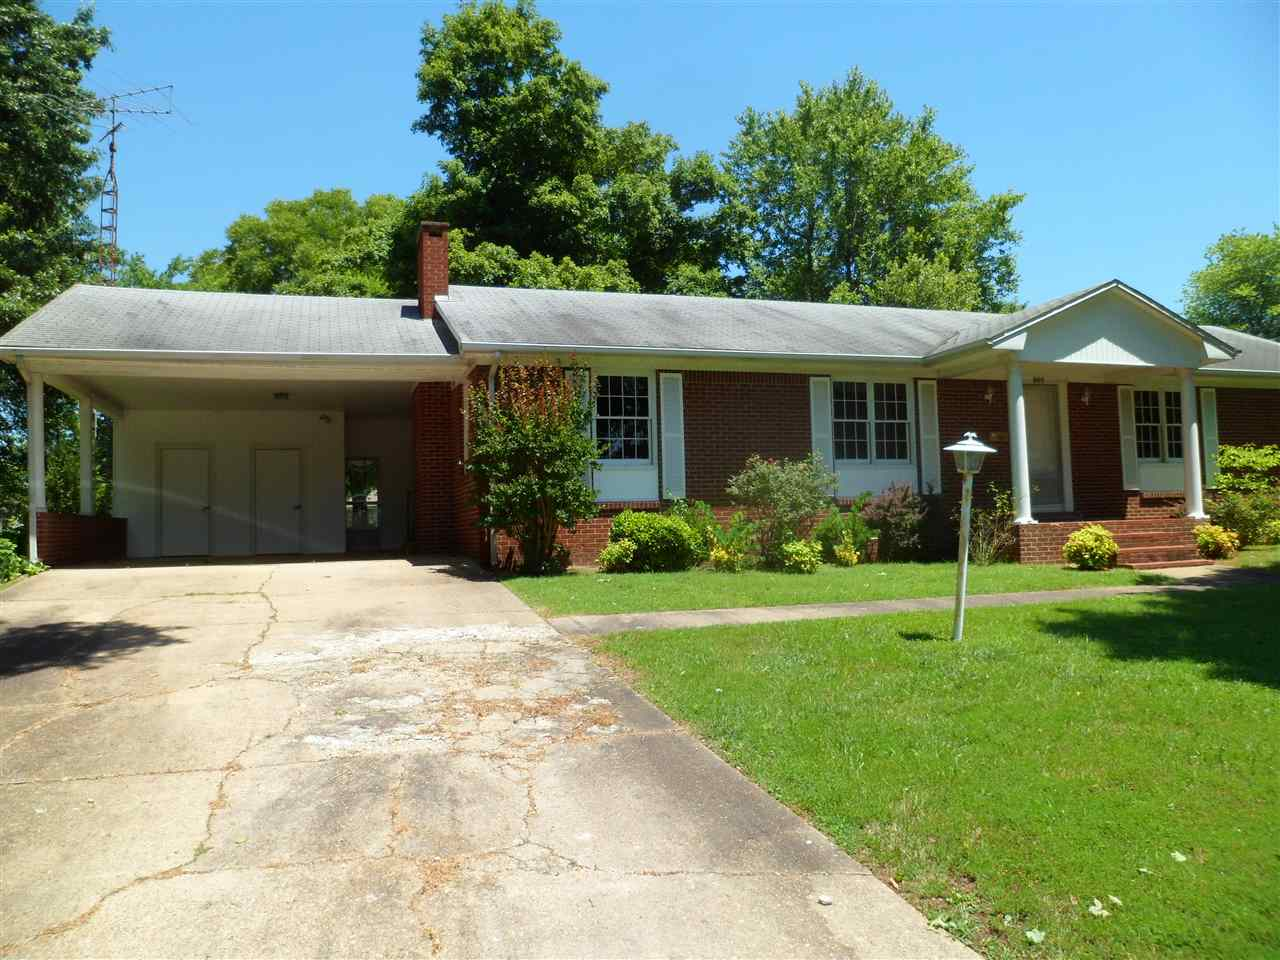 Photo of 803 weda ave  Mayfield  KY